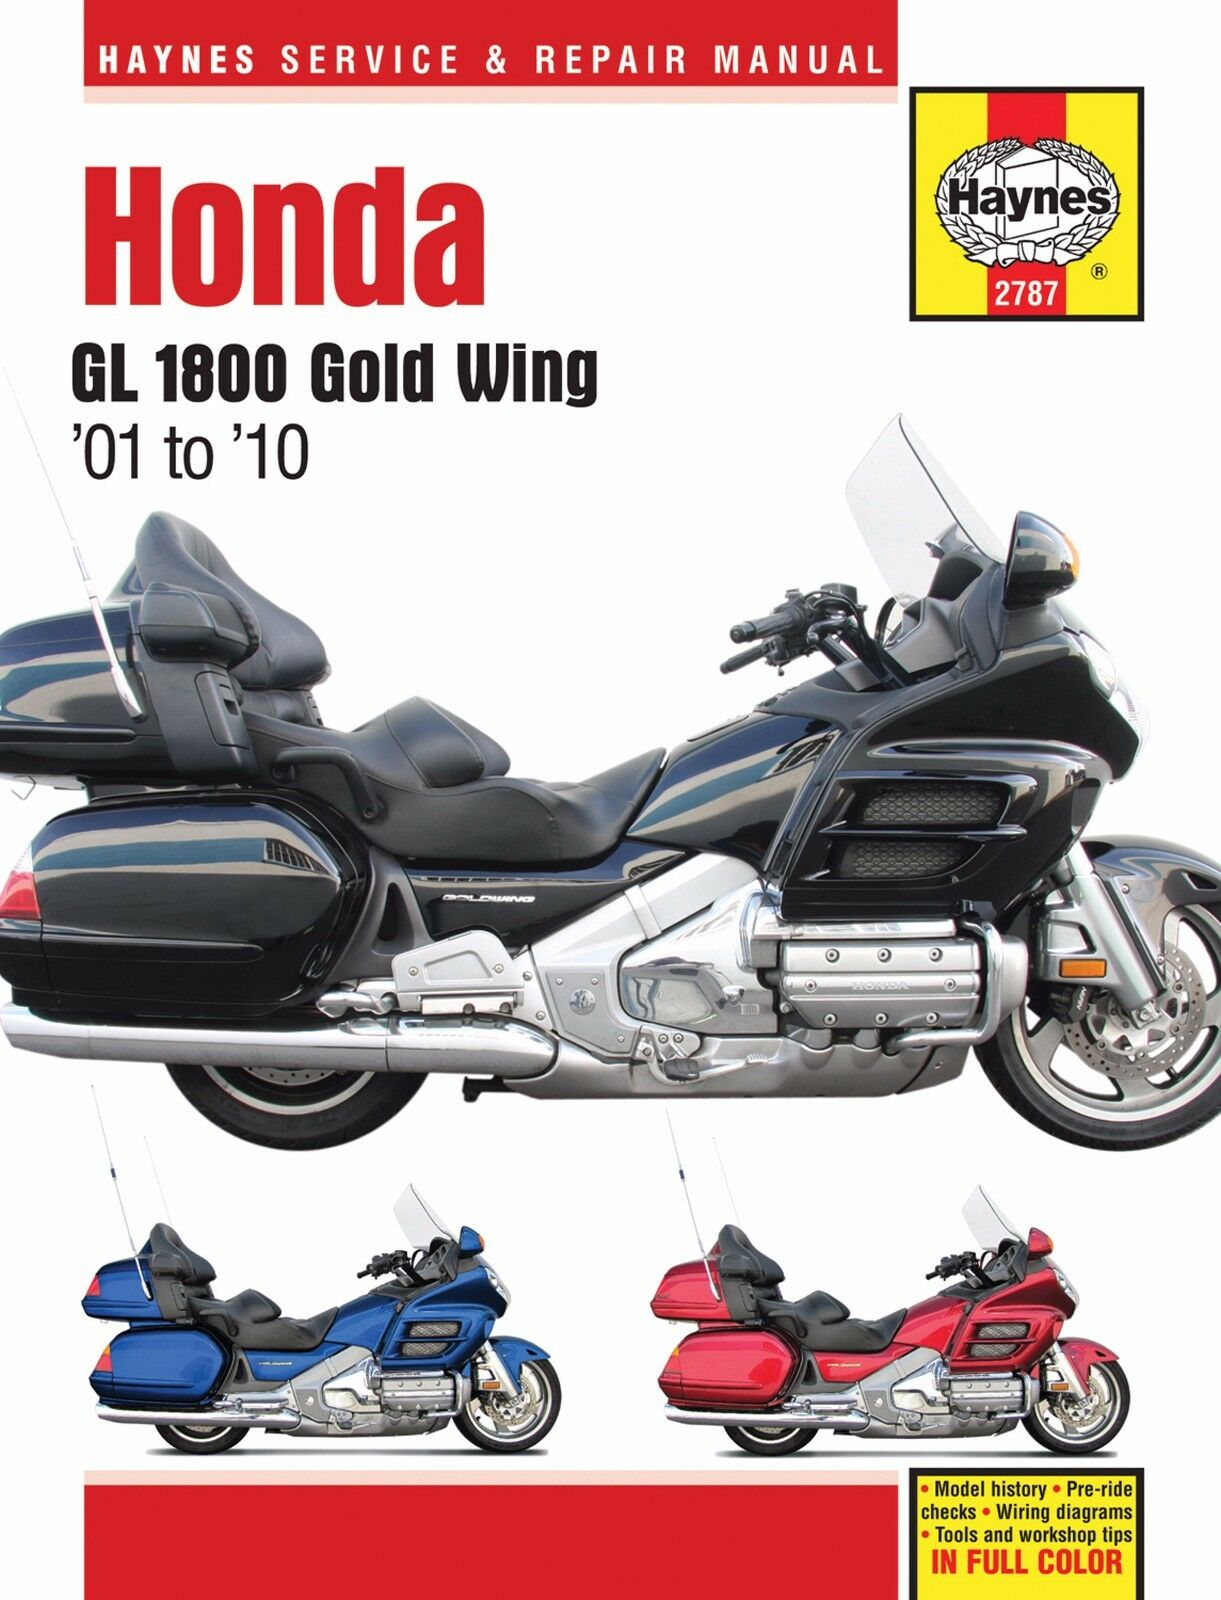 2001 2010 Honda Goldwing Gold Wing Gl 1800 Haynes Repair Manual 2787 Stereo Wiring Diagram 1 Of 3only 2 Available